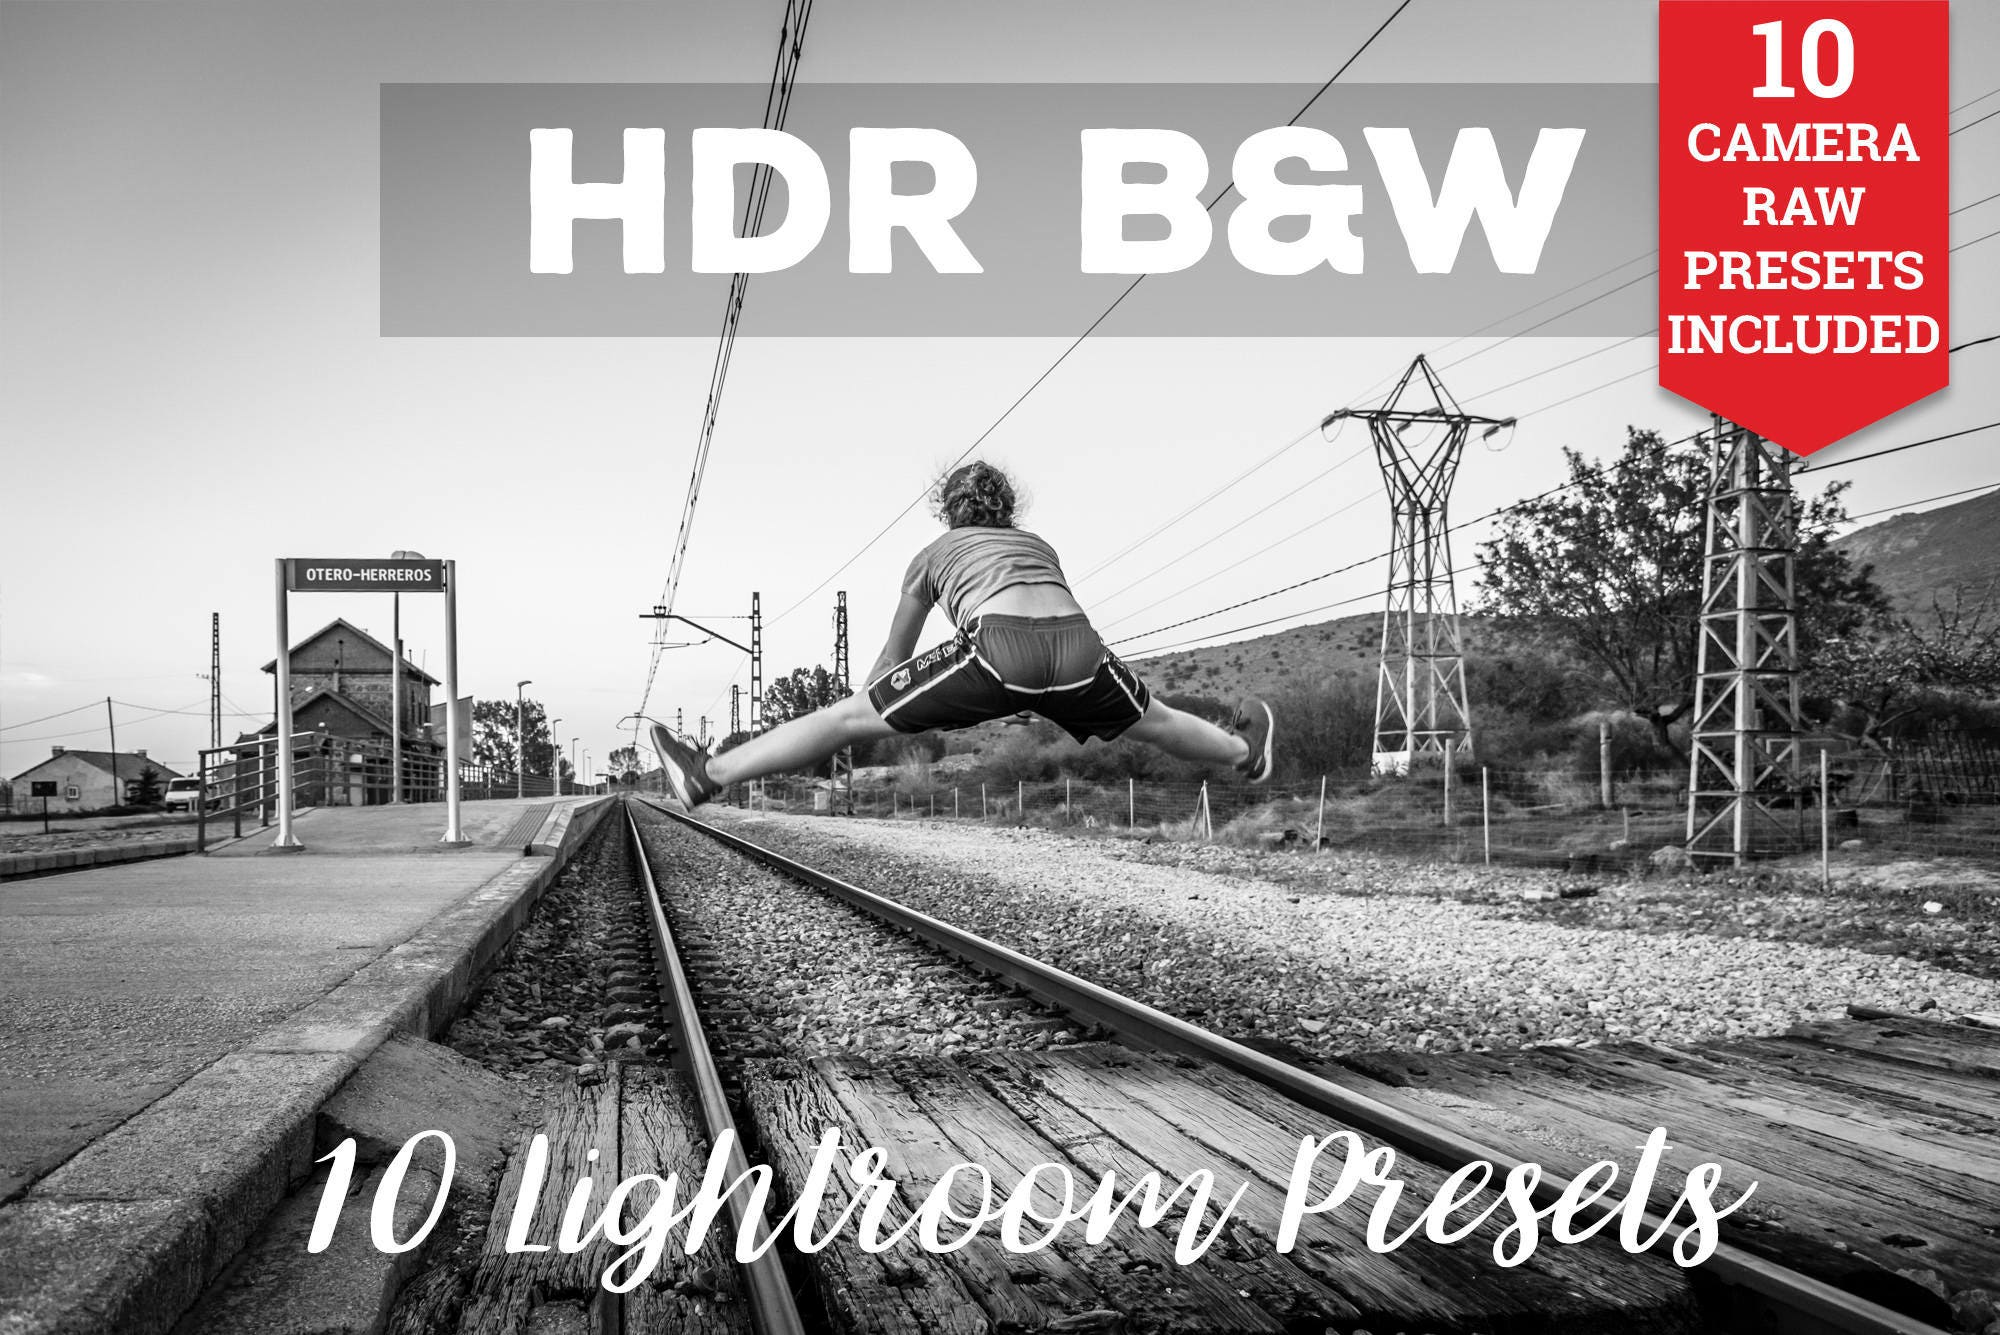 Hdr black and white lightroom presets adobe camera raw photoshop photography hdr retouch professional enhance photos preset one click